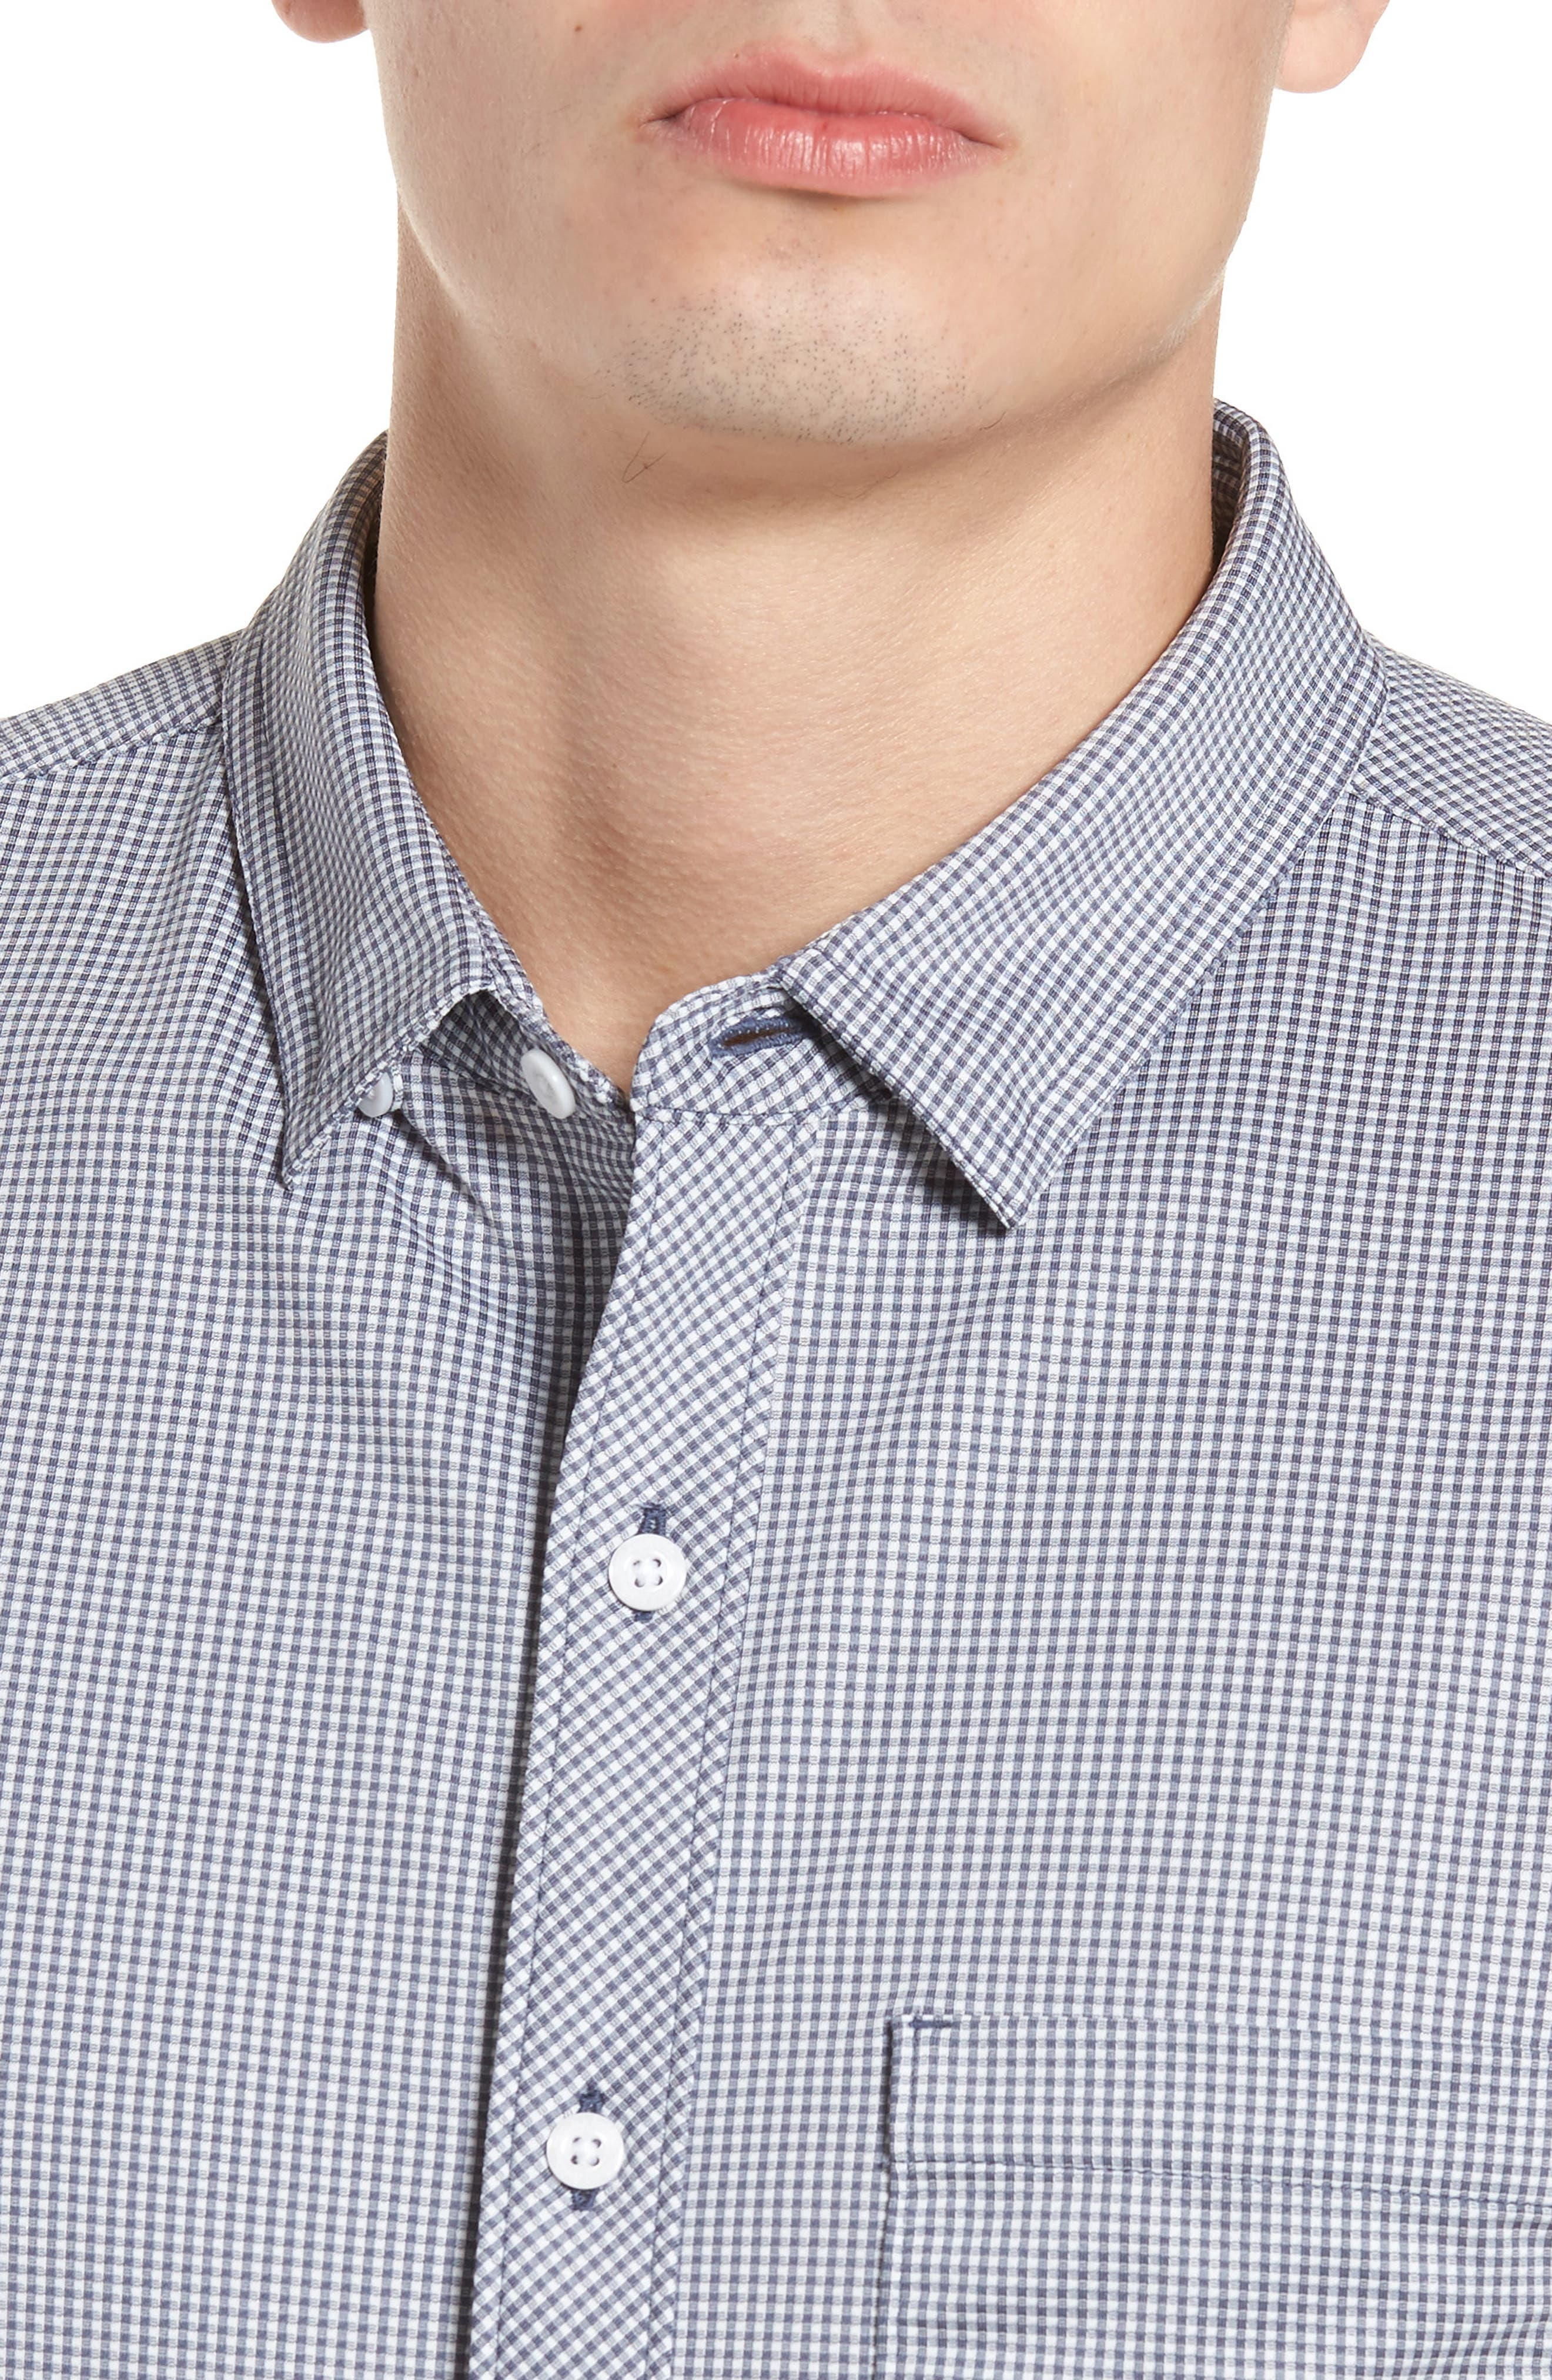 Couig Gingham Sport Shirt,                             Alternate thumbnail 2, color,                             White/ Grisaille